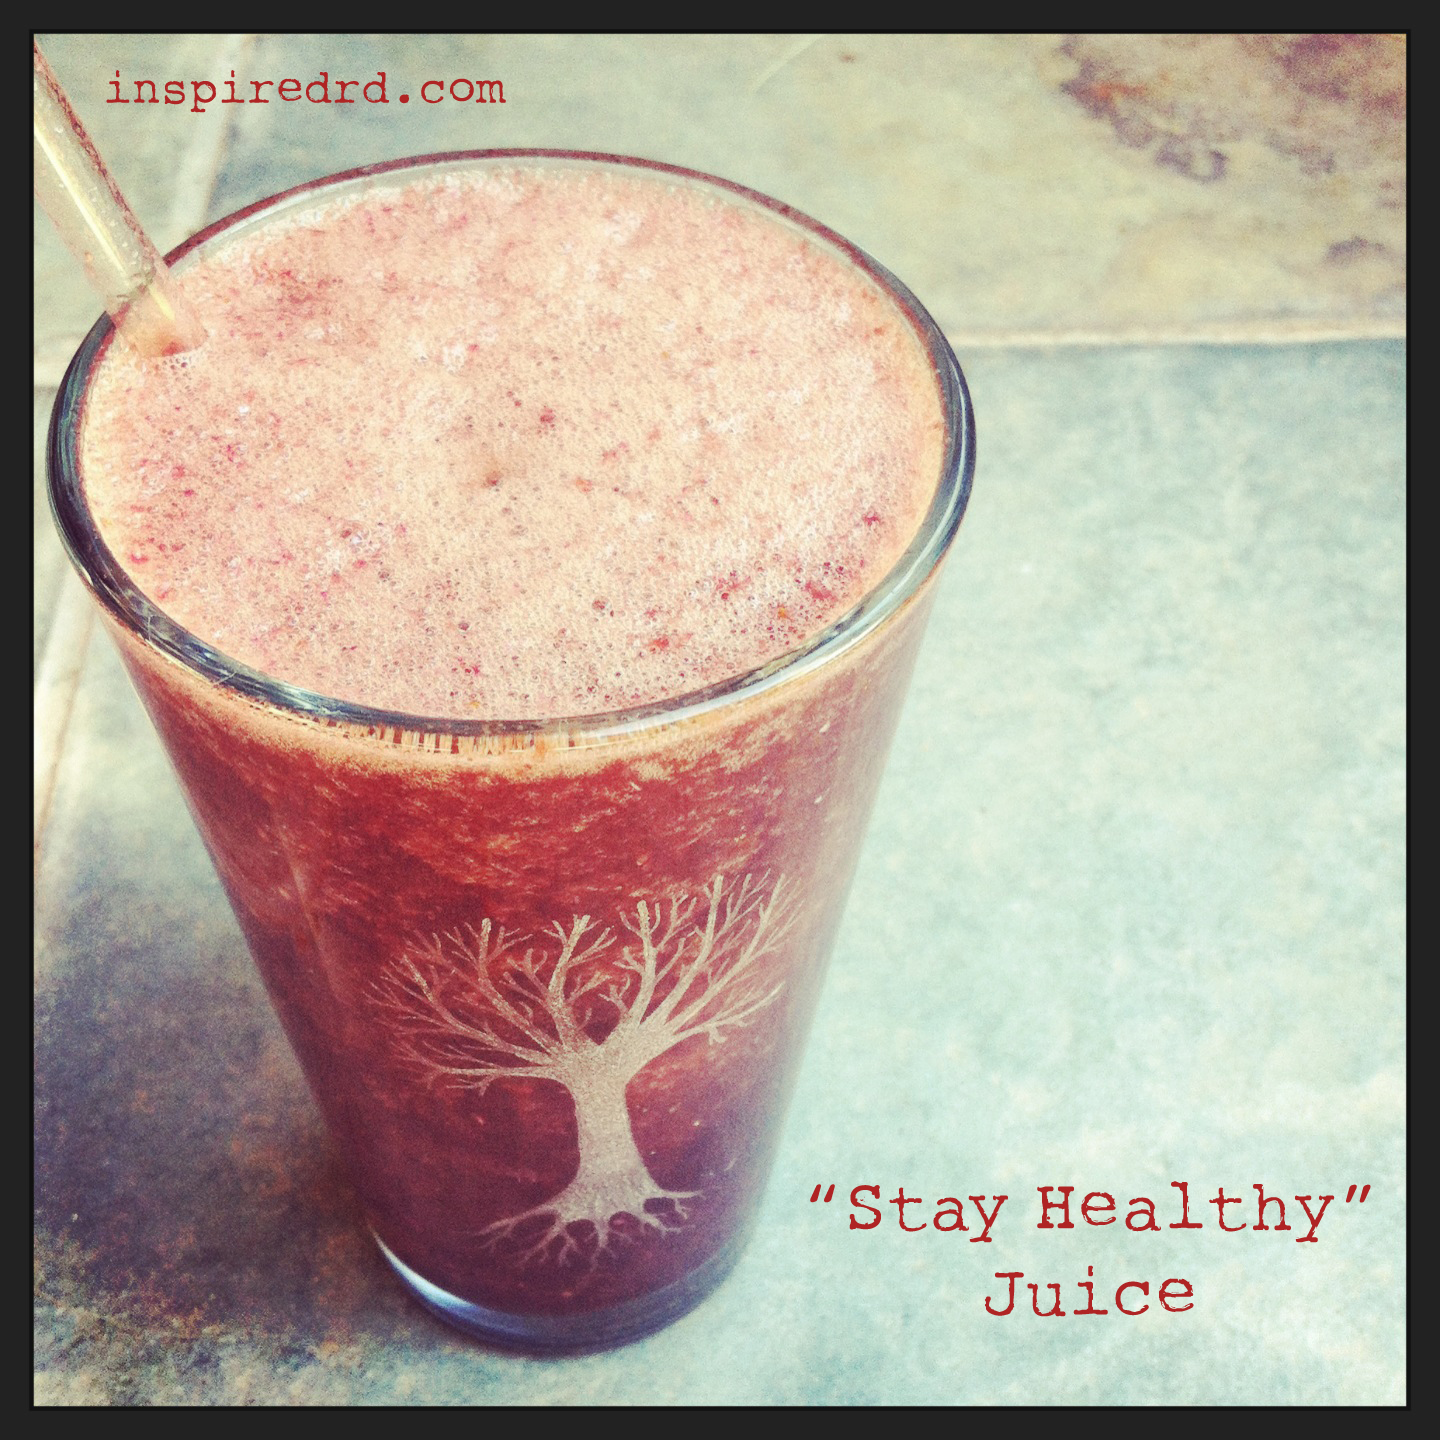 """Stay Healthy"" Juice from InspiredRD.com"